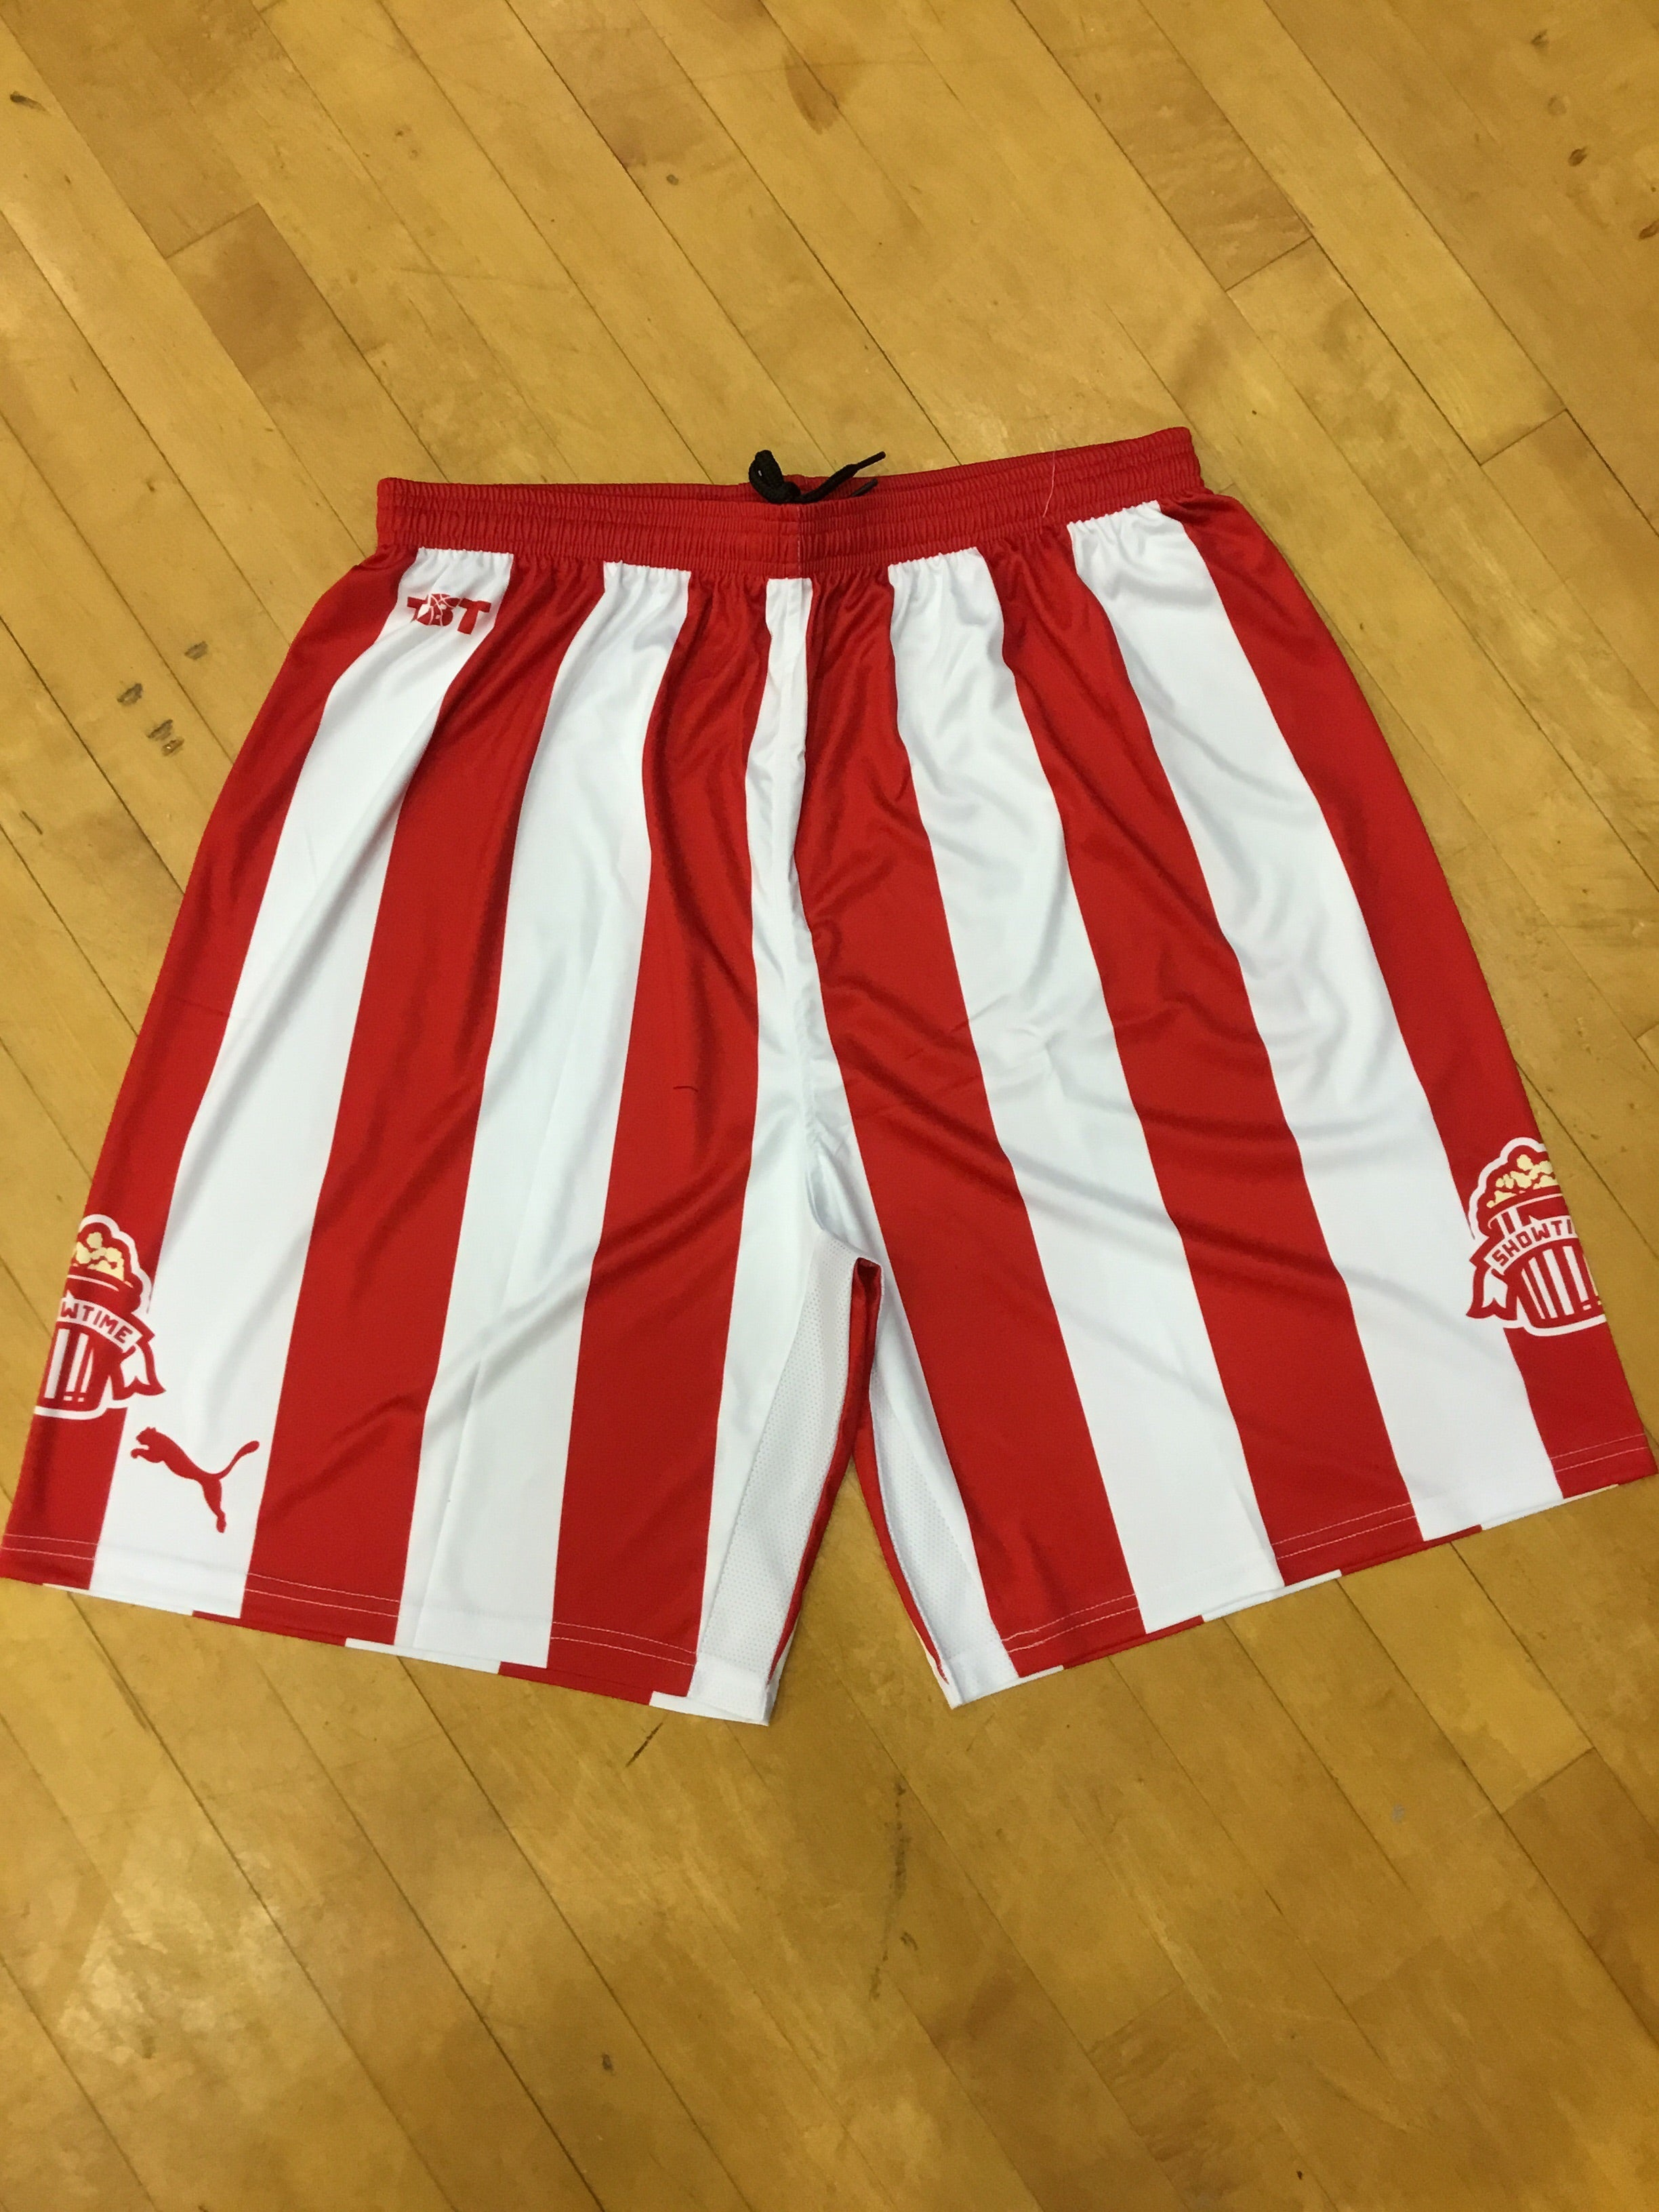 Showtime - 2018 Official Team Shorts